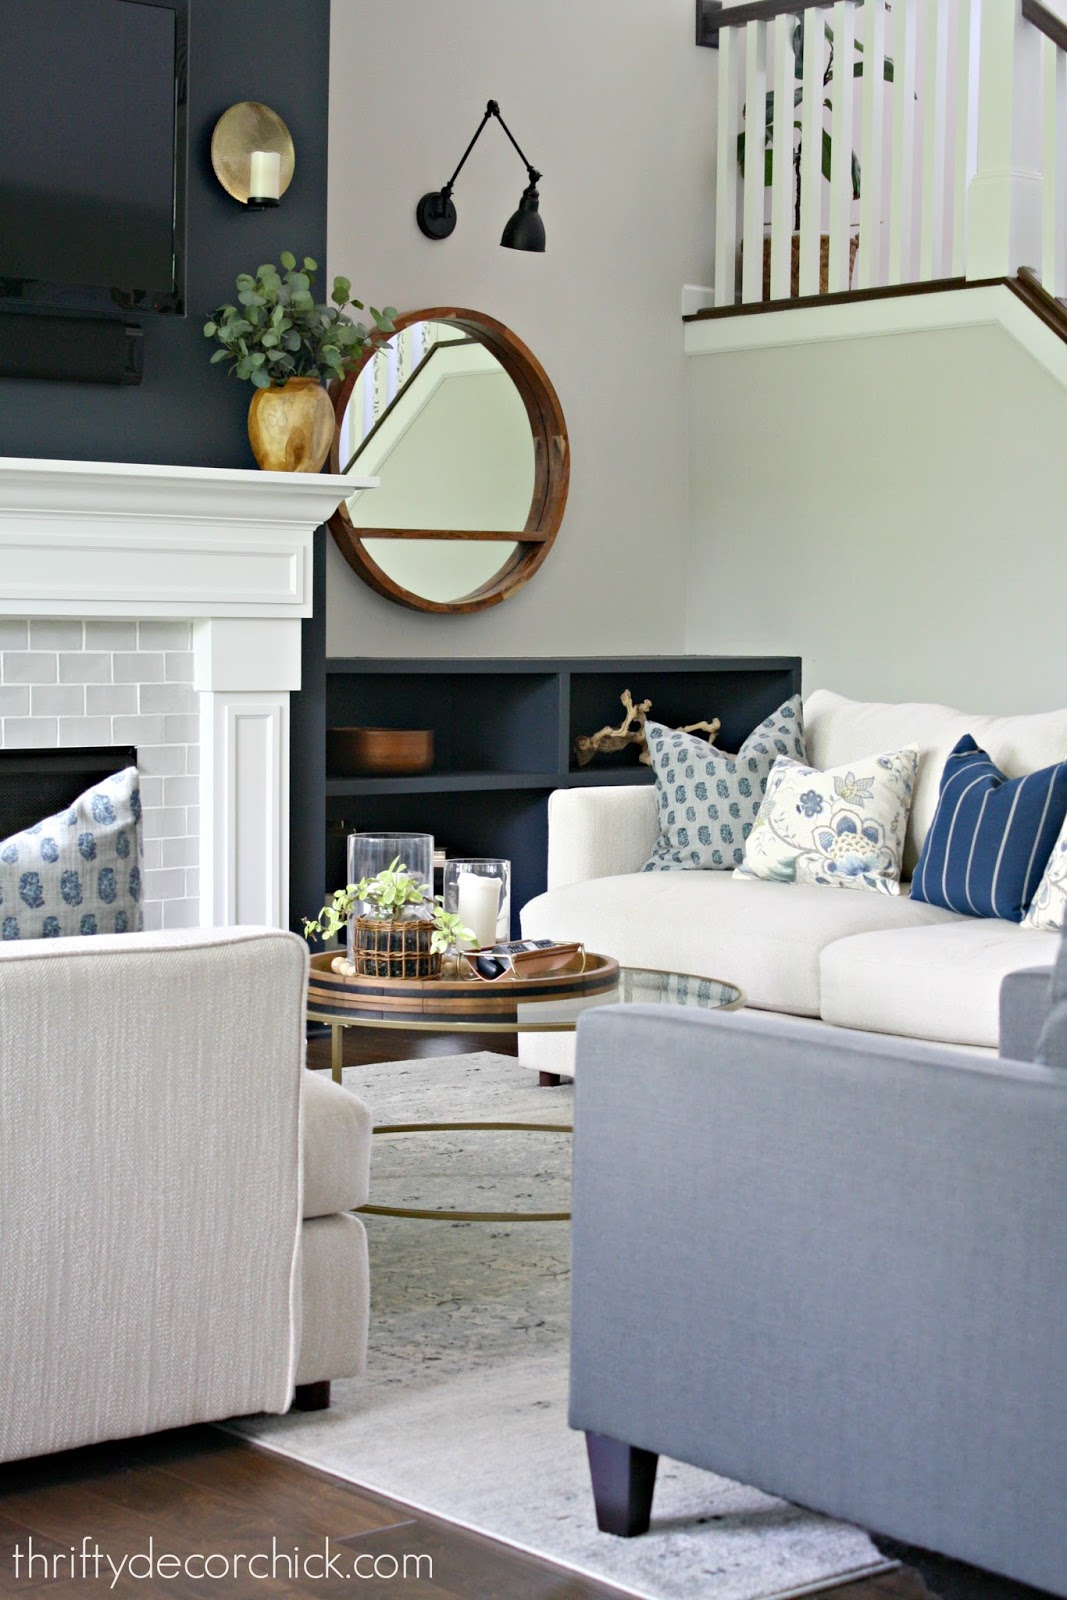 Blue green and gray pillows on light sofa